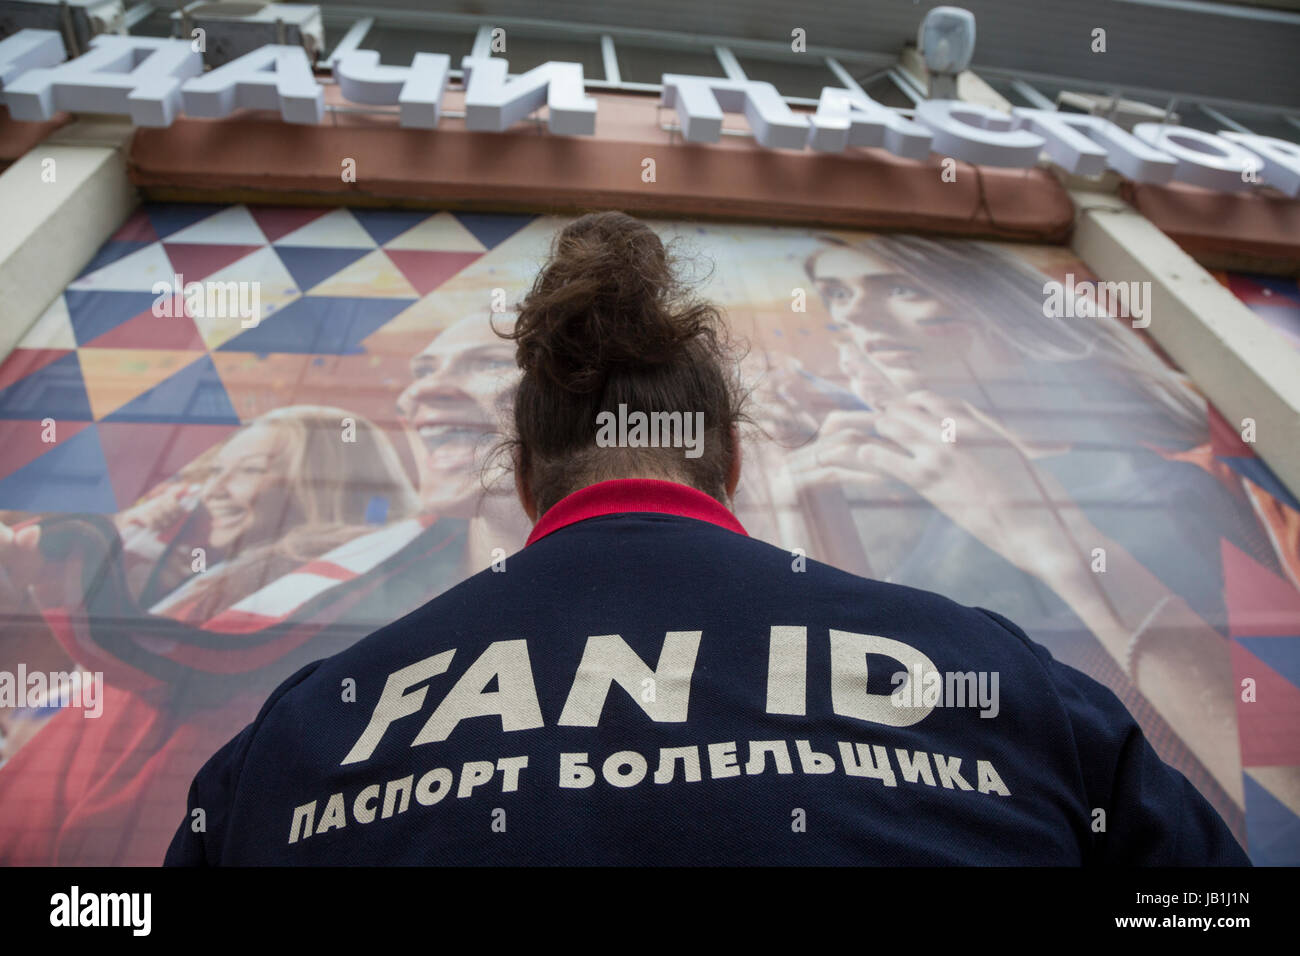 Volunteers help to fans of the World Cup at the point of issue of the Fan ID in Moscow city, Russia - Stock Image